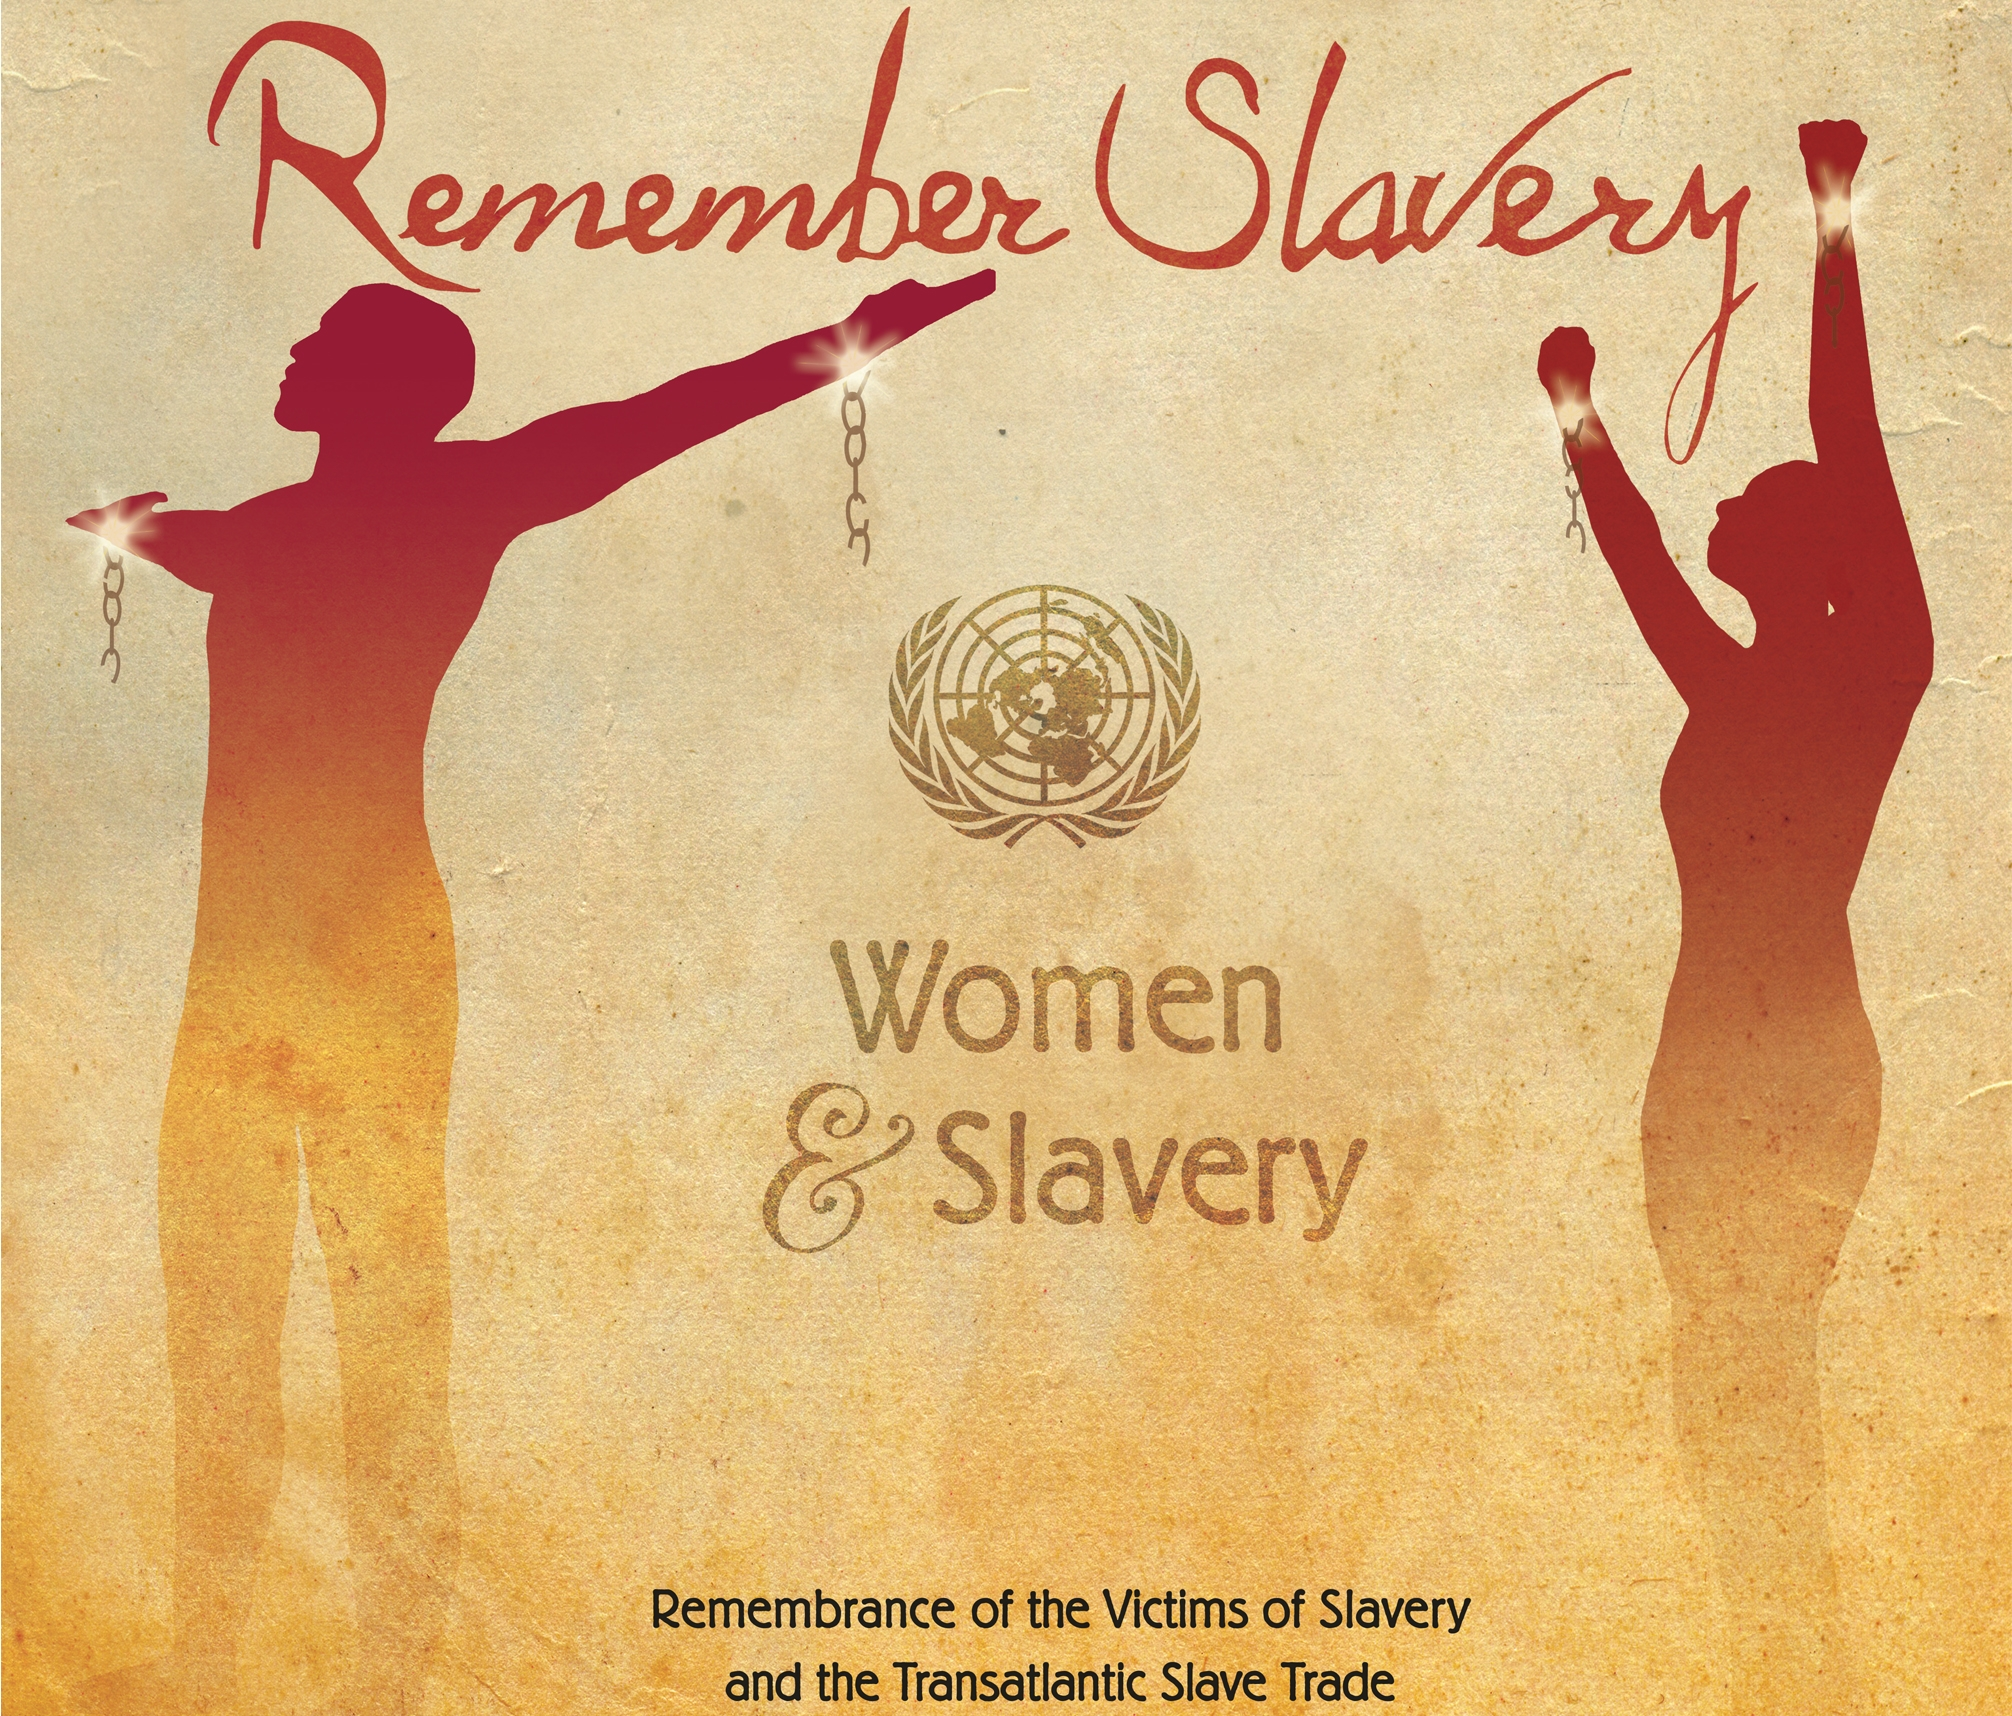 International Day Of Remembrance Of The Victims Of Slavery And The Transatlantic